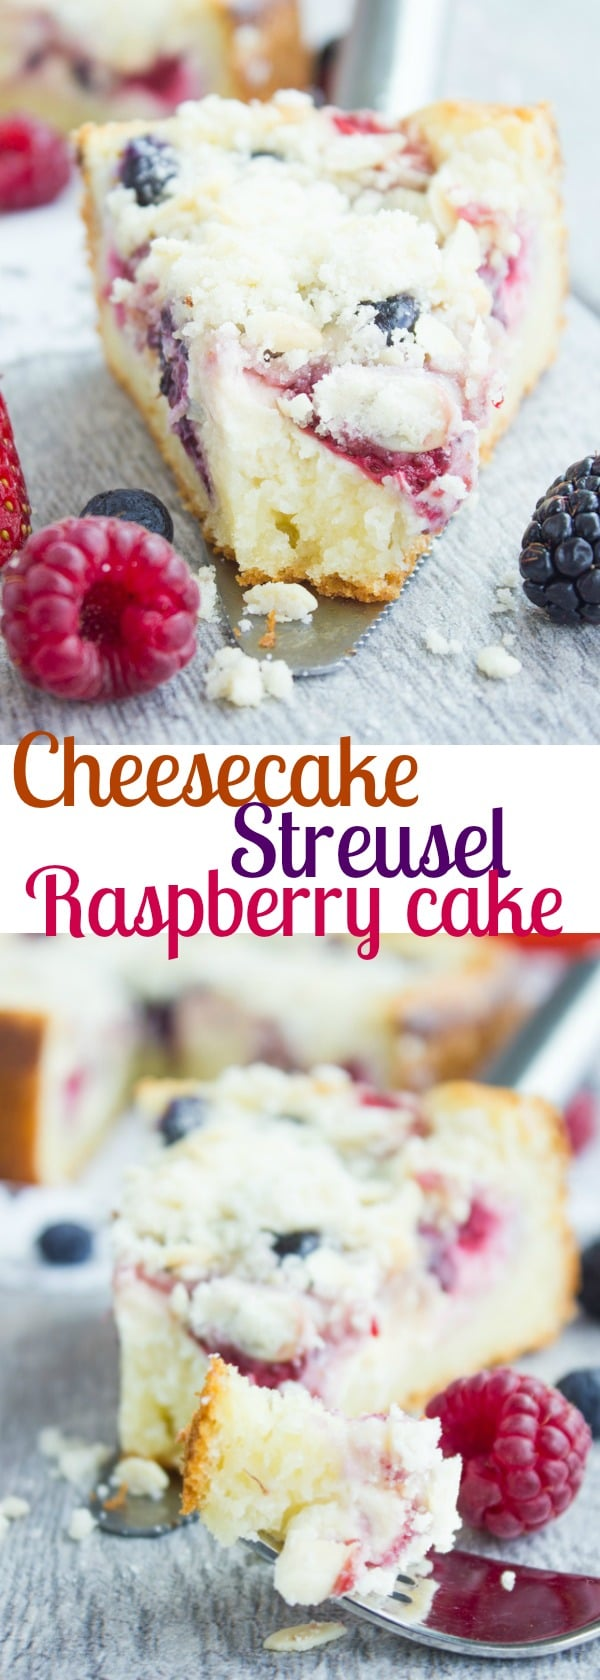 Cheesecake Streusel Raspberry Cake | This cake recipe is a keeper! Picture a buttery layer of vanilla sponge cake, topped with a thin layer of vanilla cheesecake, fresh berries and a generous amount of buttery almond streusel crumb. #cake, #cheesecake, #berries, #streusel, #almonds, #baking, #dessert